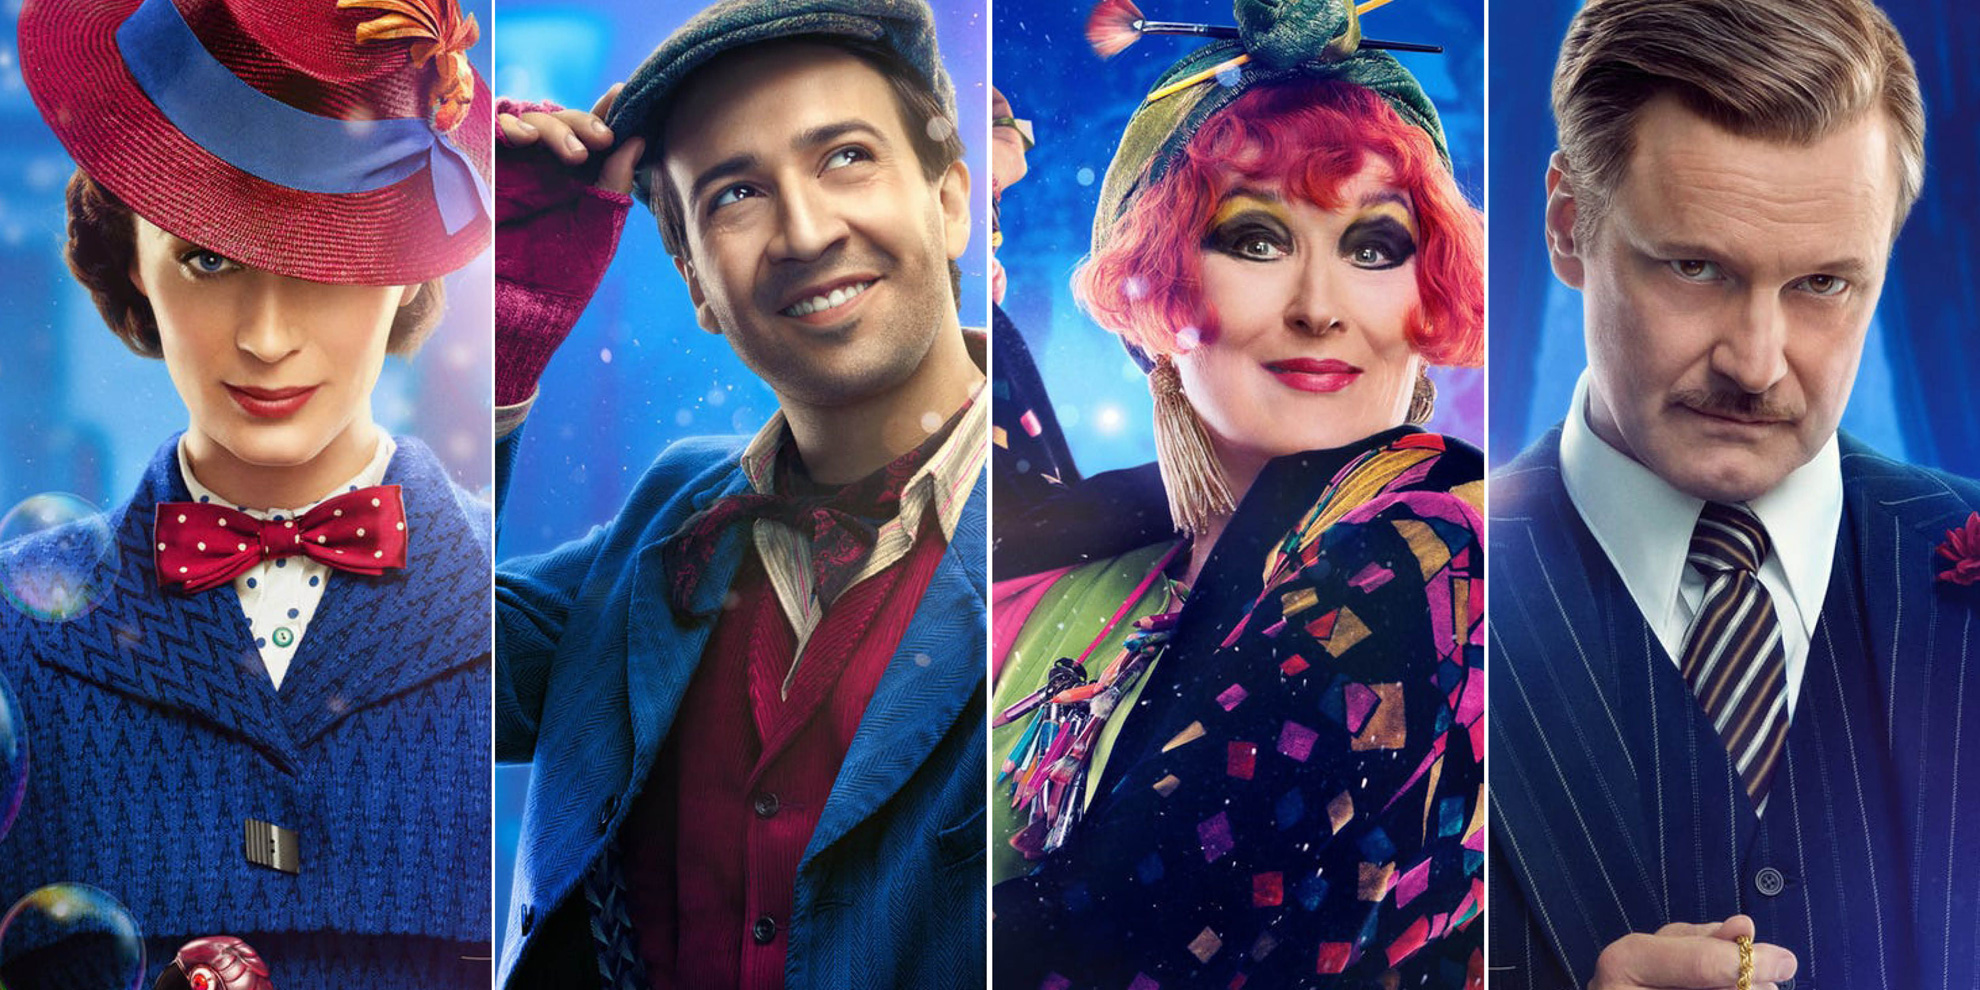 Free Download Fondos Mary Poppins Returns 2018 Disney Wallpapers 1980x990 For Your Desktop Mobile Tablet Explore 52 Mary Poppins Returns 2018 Wallpapers Mary Poppins Returns 2018 Wallpapers Mary Poppins Returns Wallpapers Mary Poppins